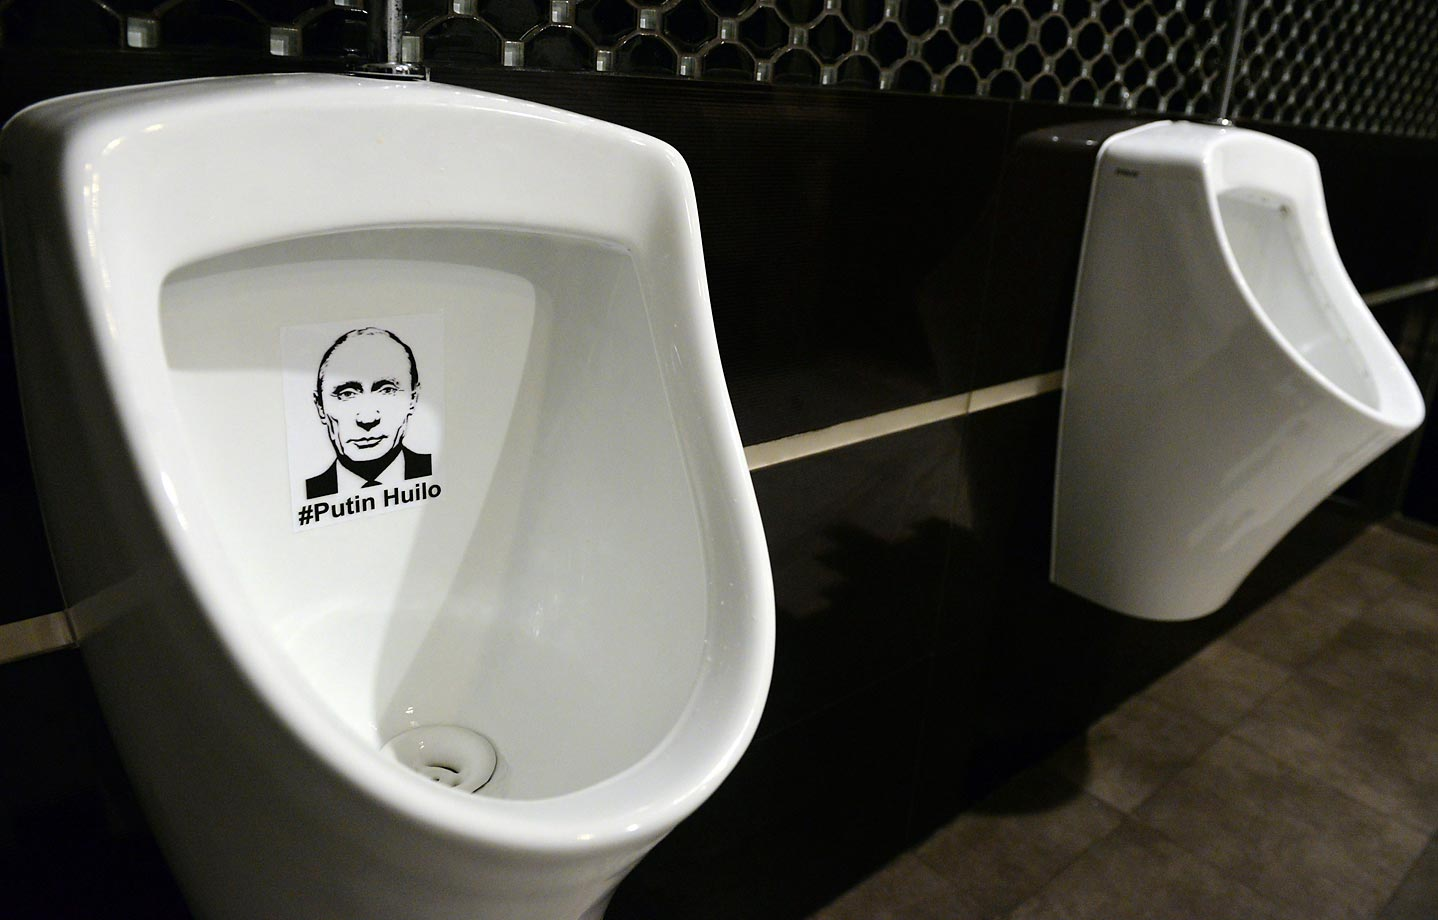 The beloved Russian President is flushed with popular sentiment at this restaurant in the Ukrainian city of Lviv.